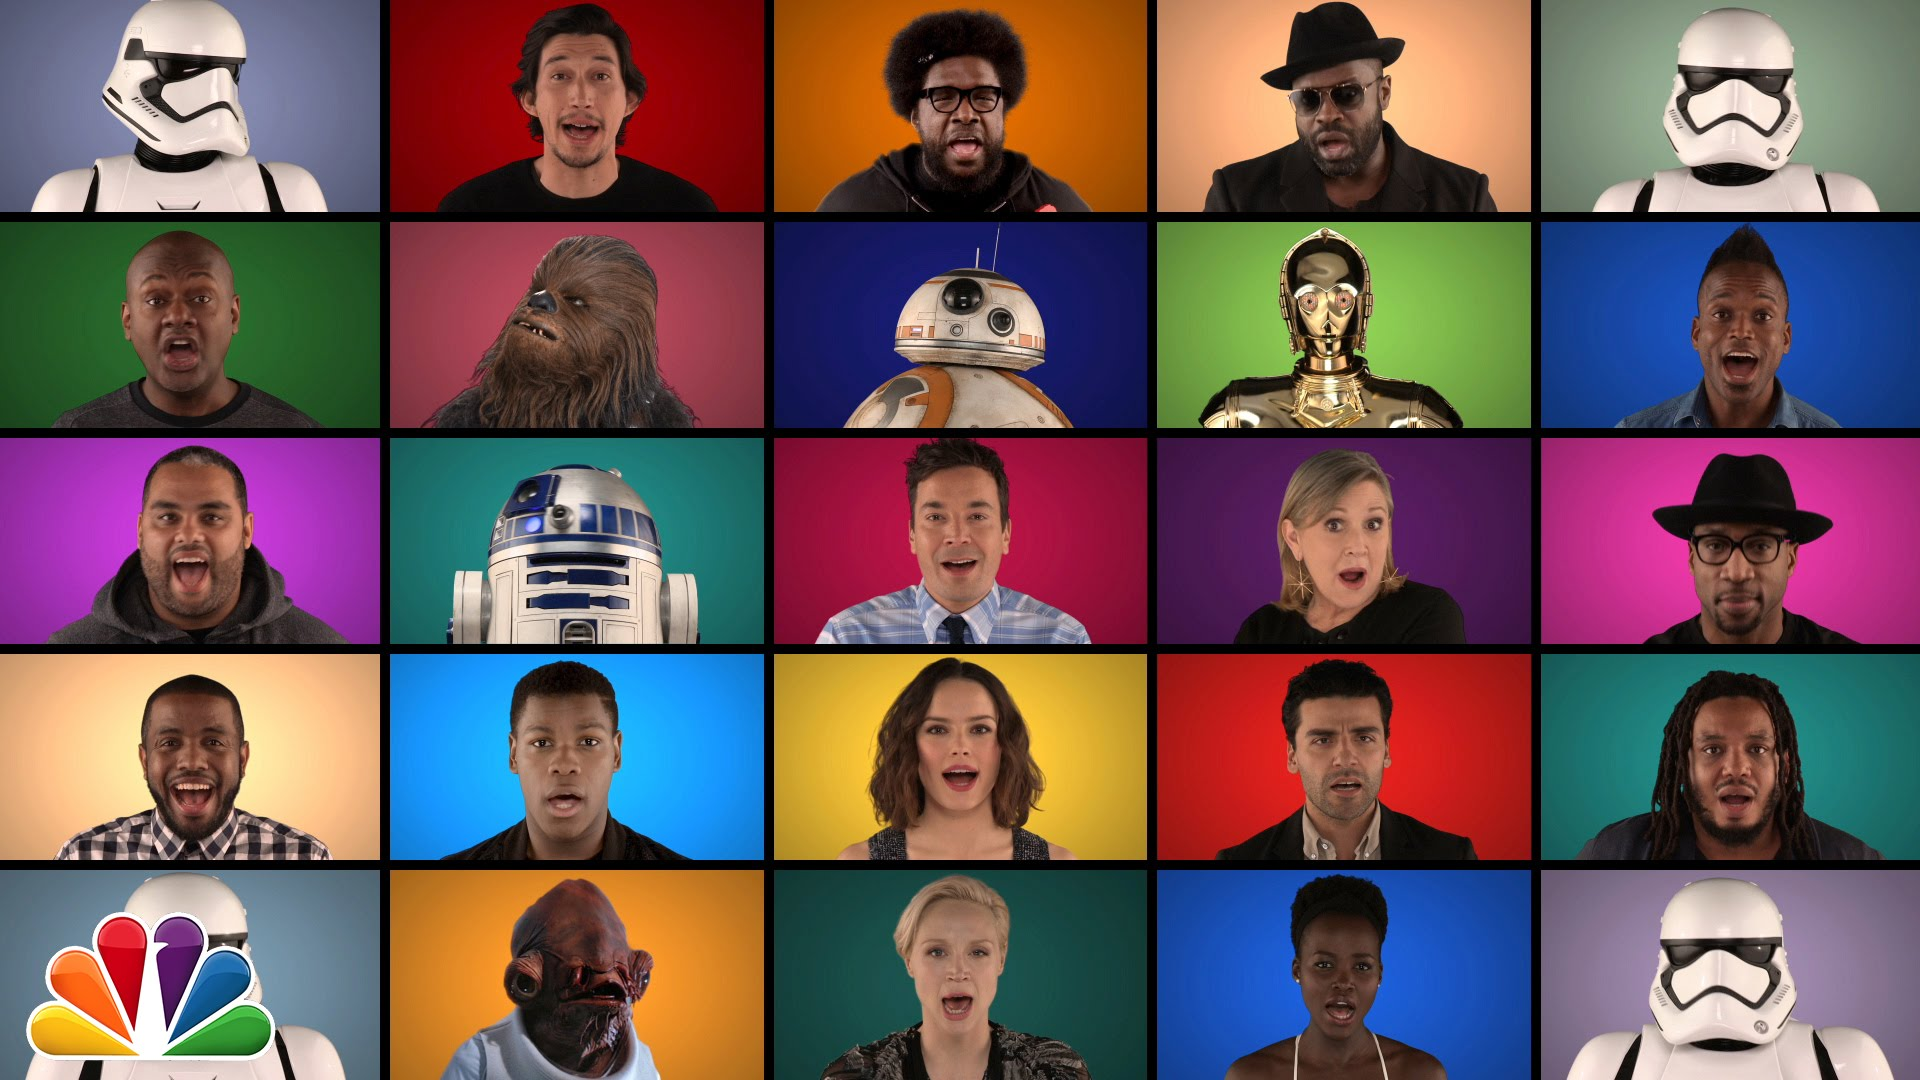 Star Wars: The Force Awakens cast does Star Wars medley a